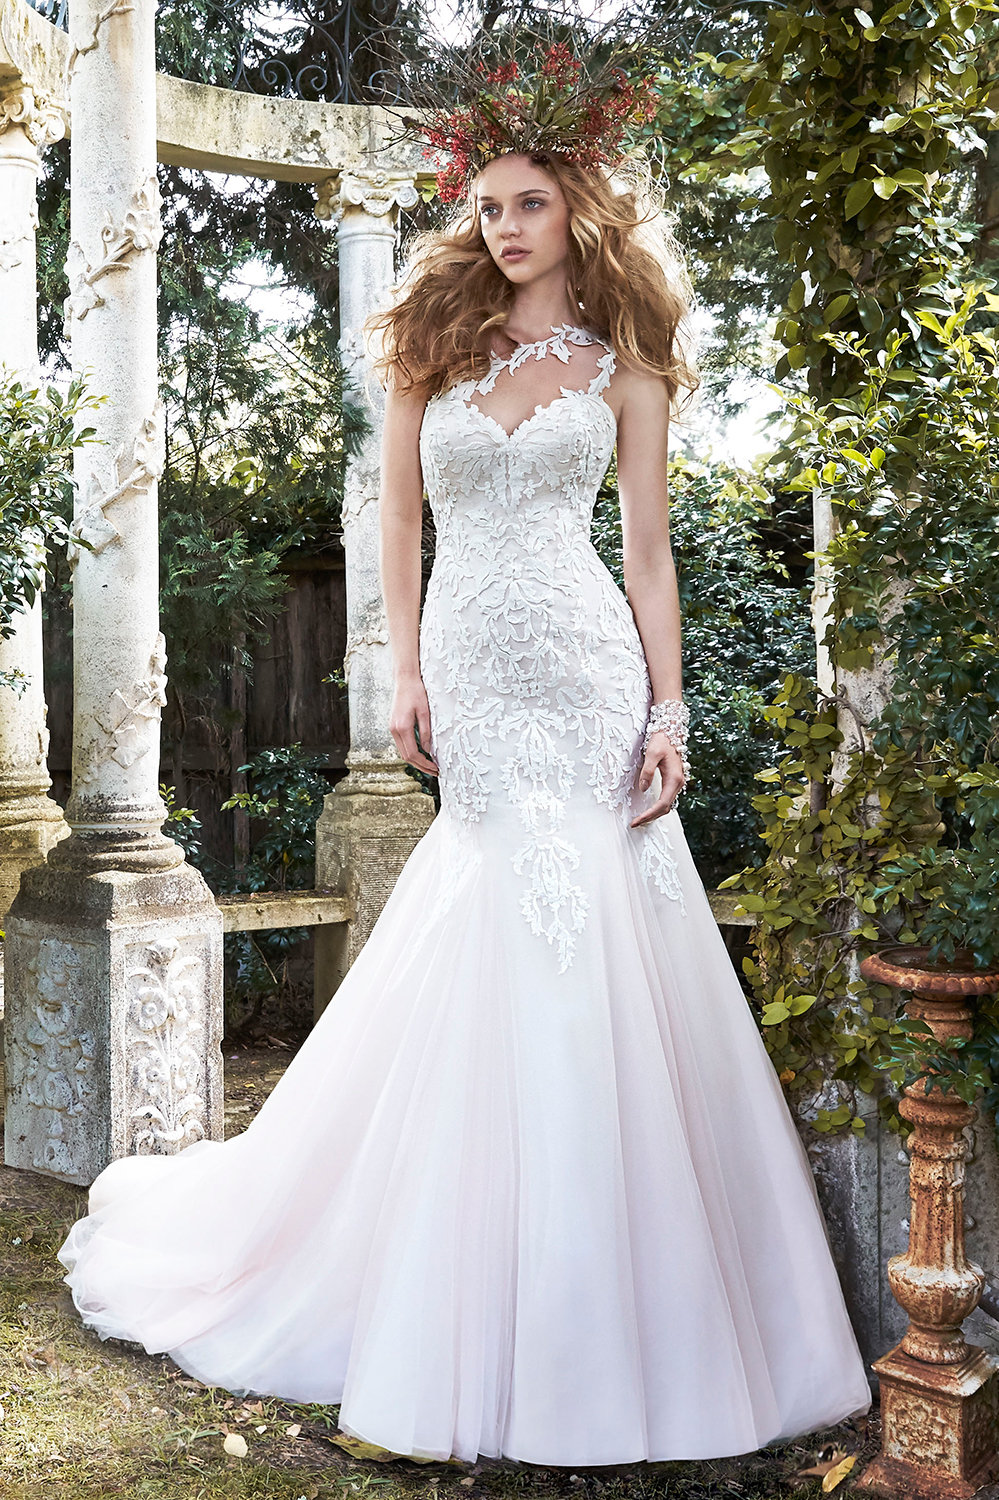 Eve Maggie Sottero Wedding Gown